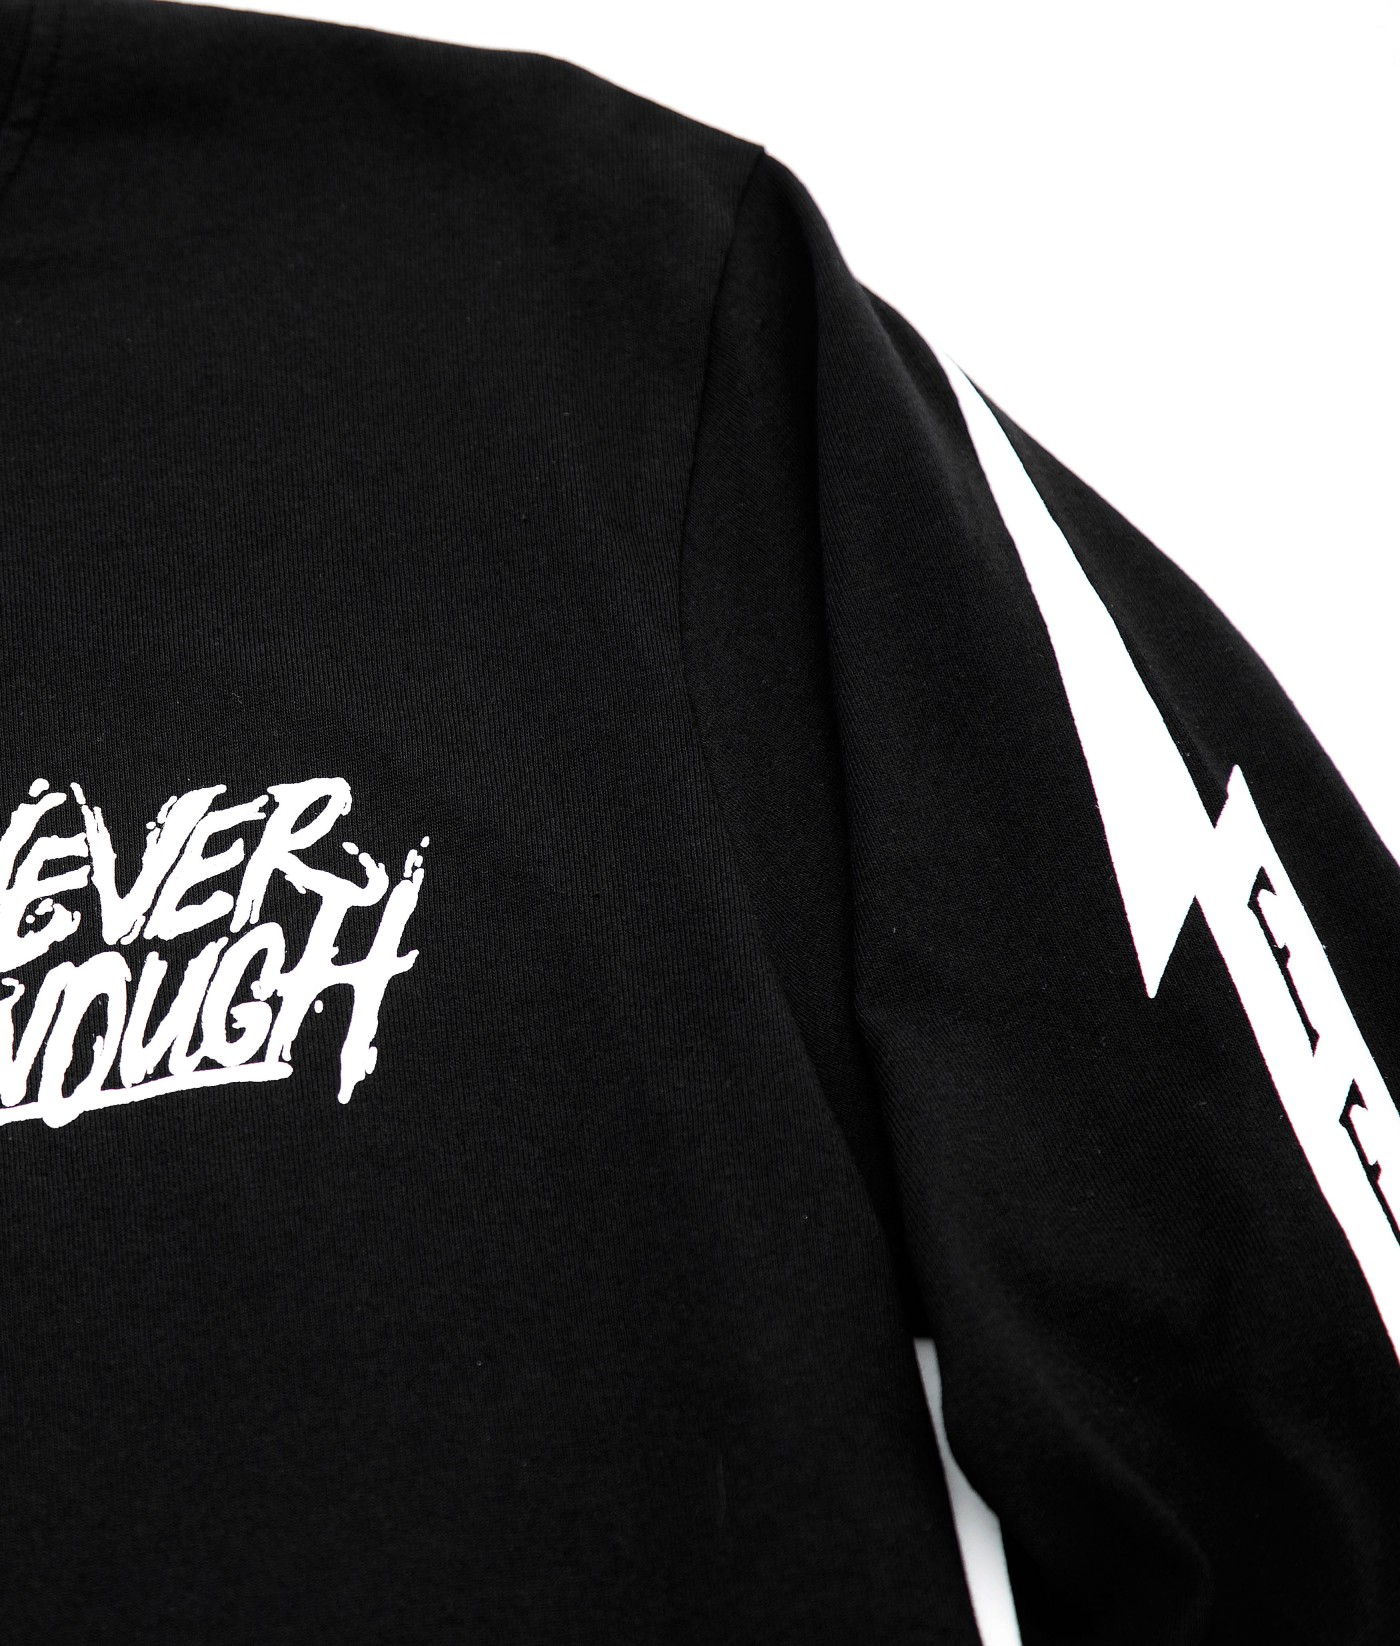 FEAR NEVER ENOUGH GRAPHIC TEE (BLACK)